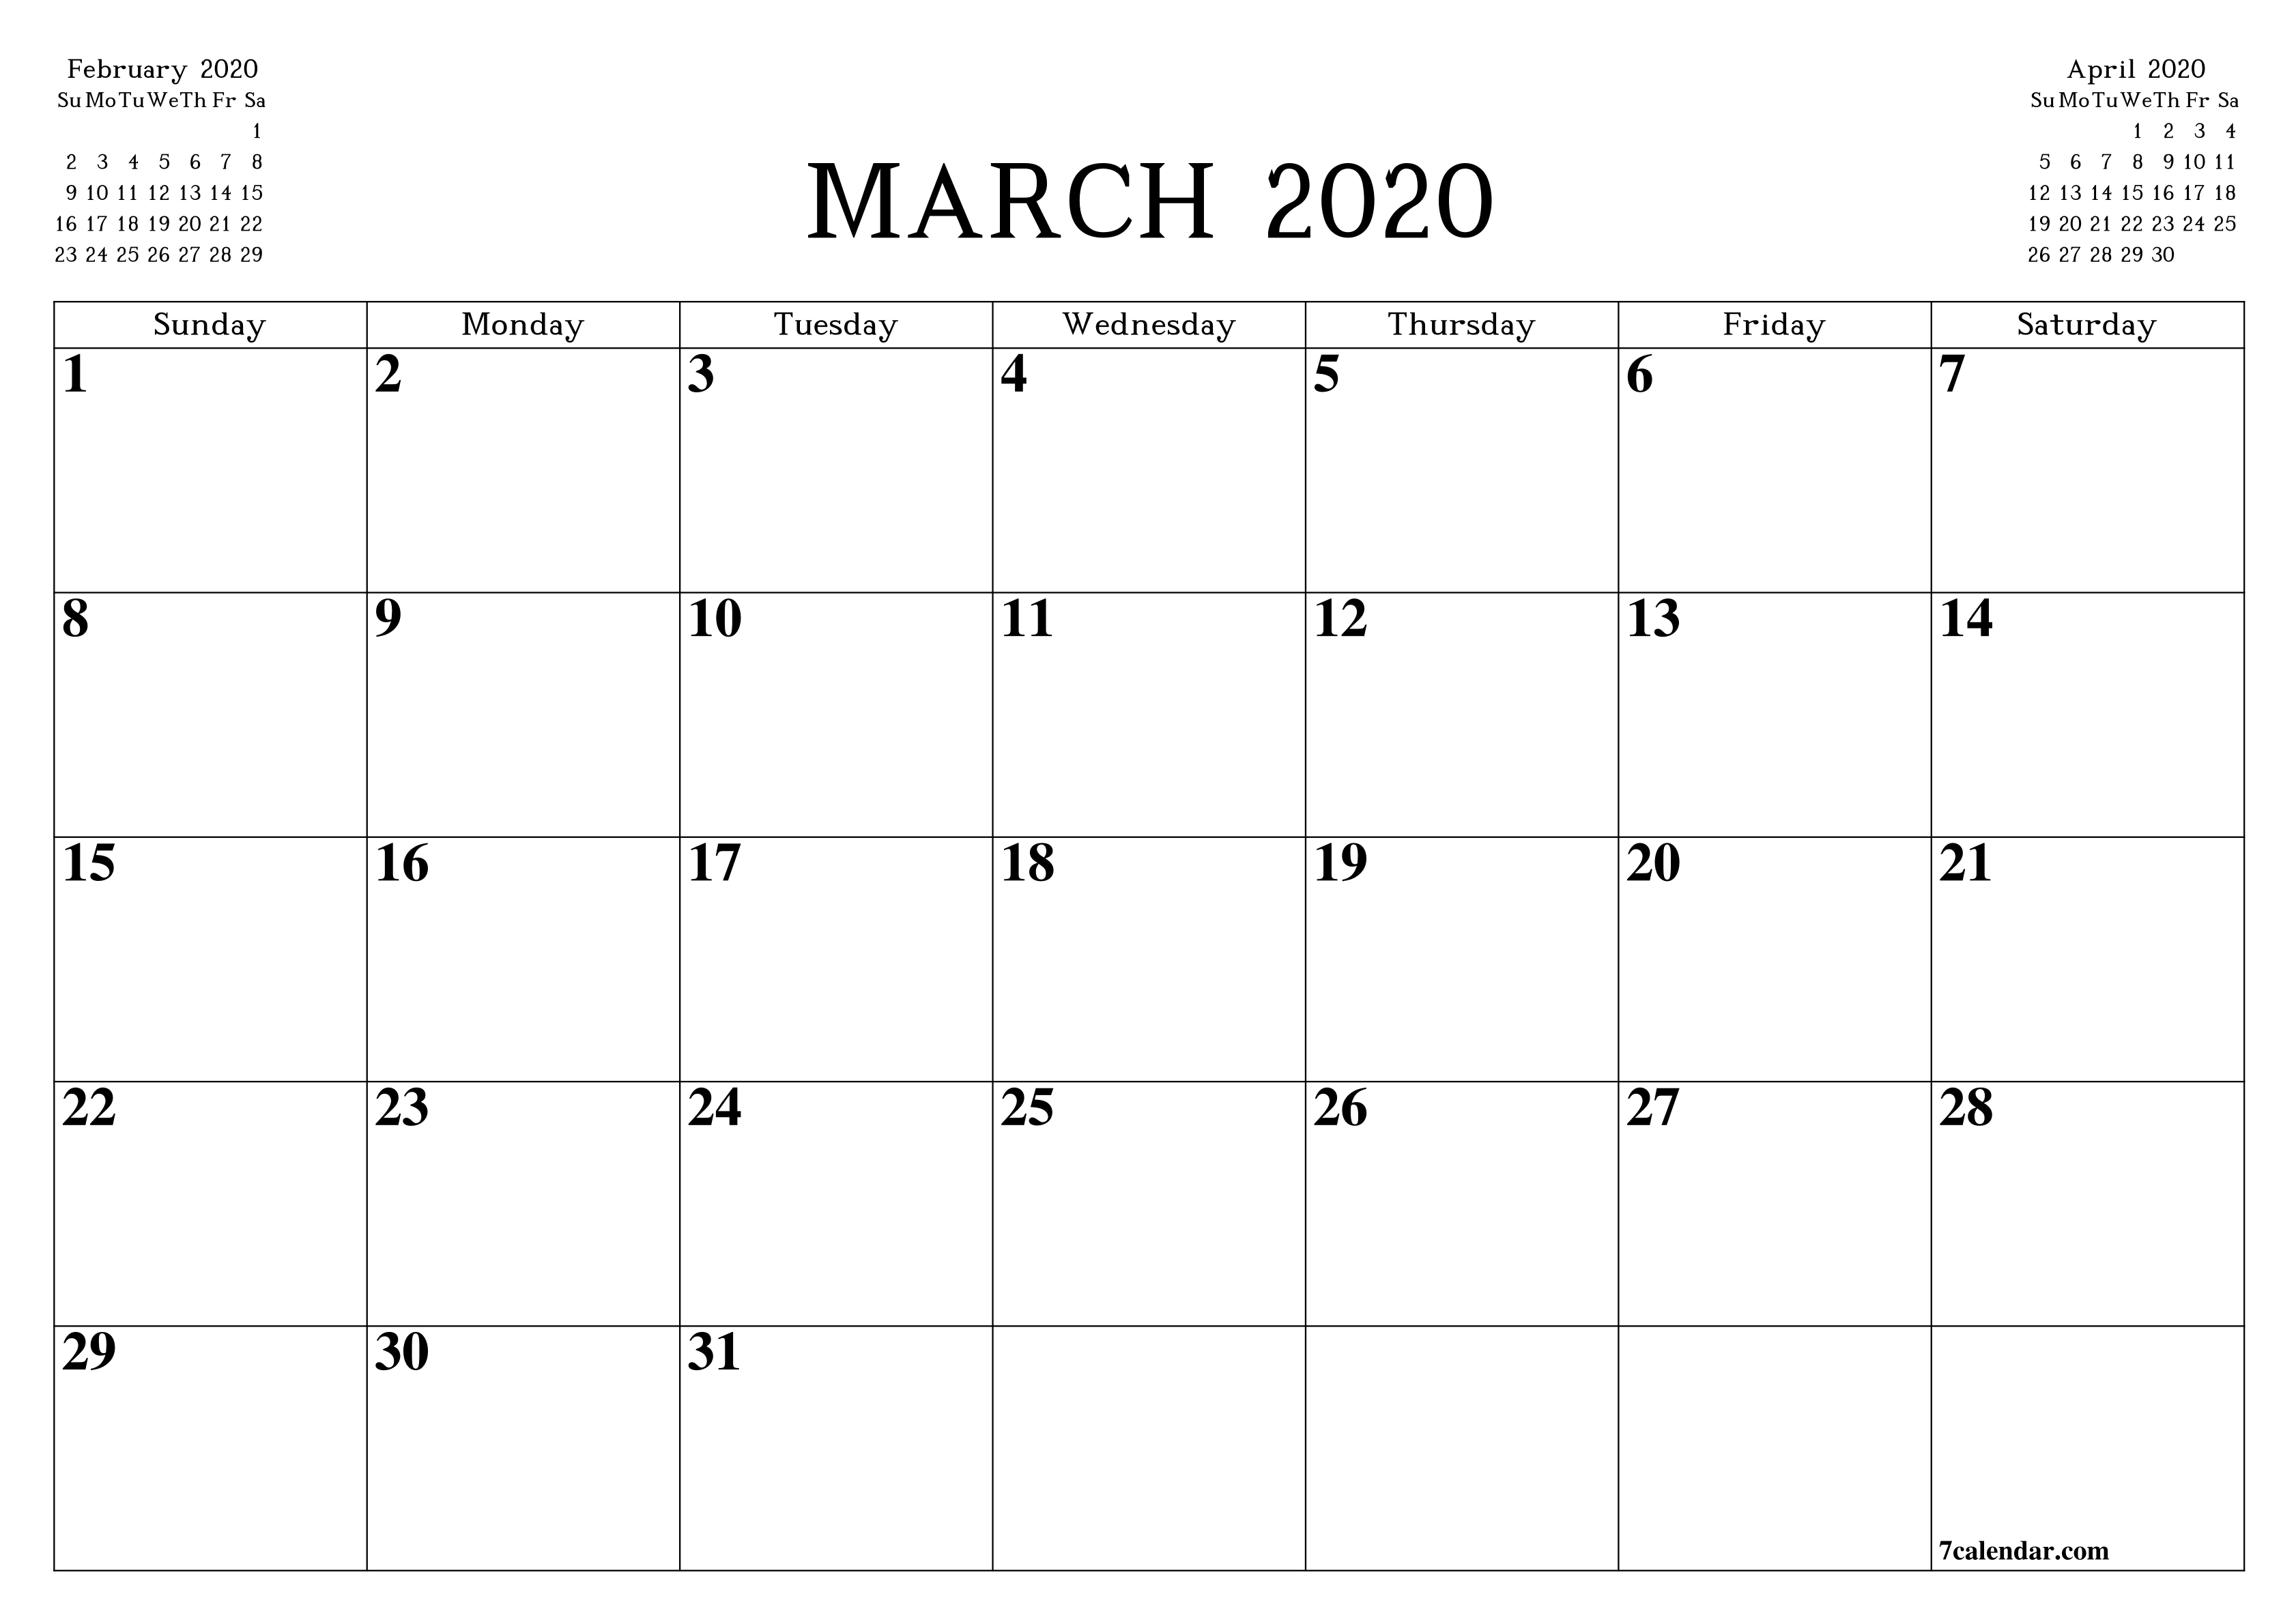 Printable Blank Monthly Planner For March 2020 - A4, A5 And pertaining to October 2020 Printable Planning Calendar In Portrait